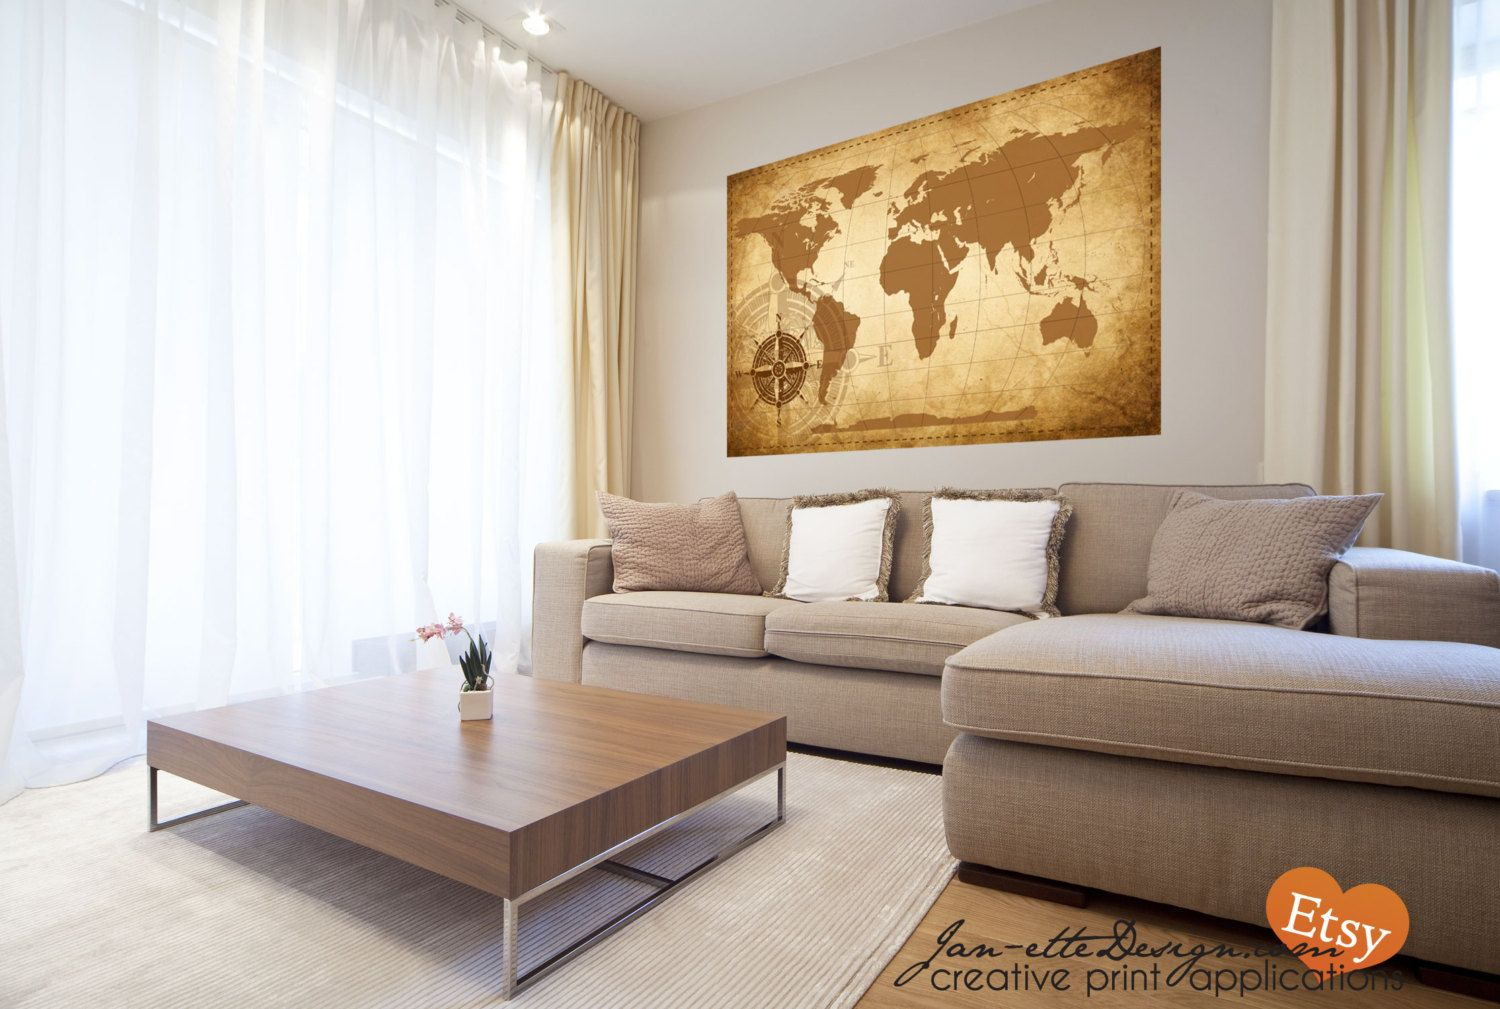 Large rustic world map fabric wall decal by janettedesign on etsy large rustic world map fabric wall decal by janettedesign on etsy gumiabroncs Image collections